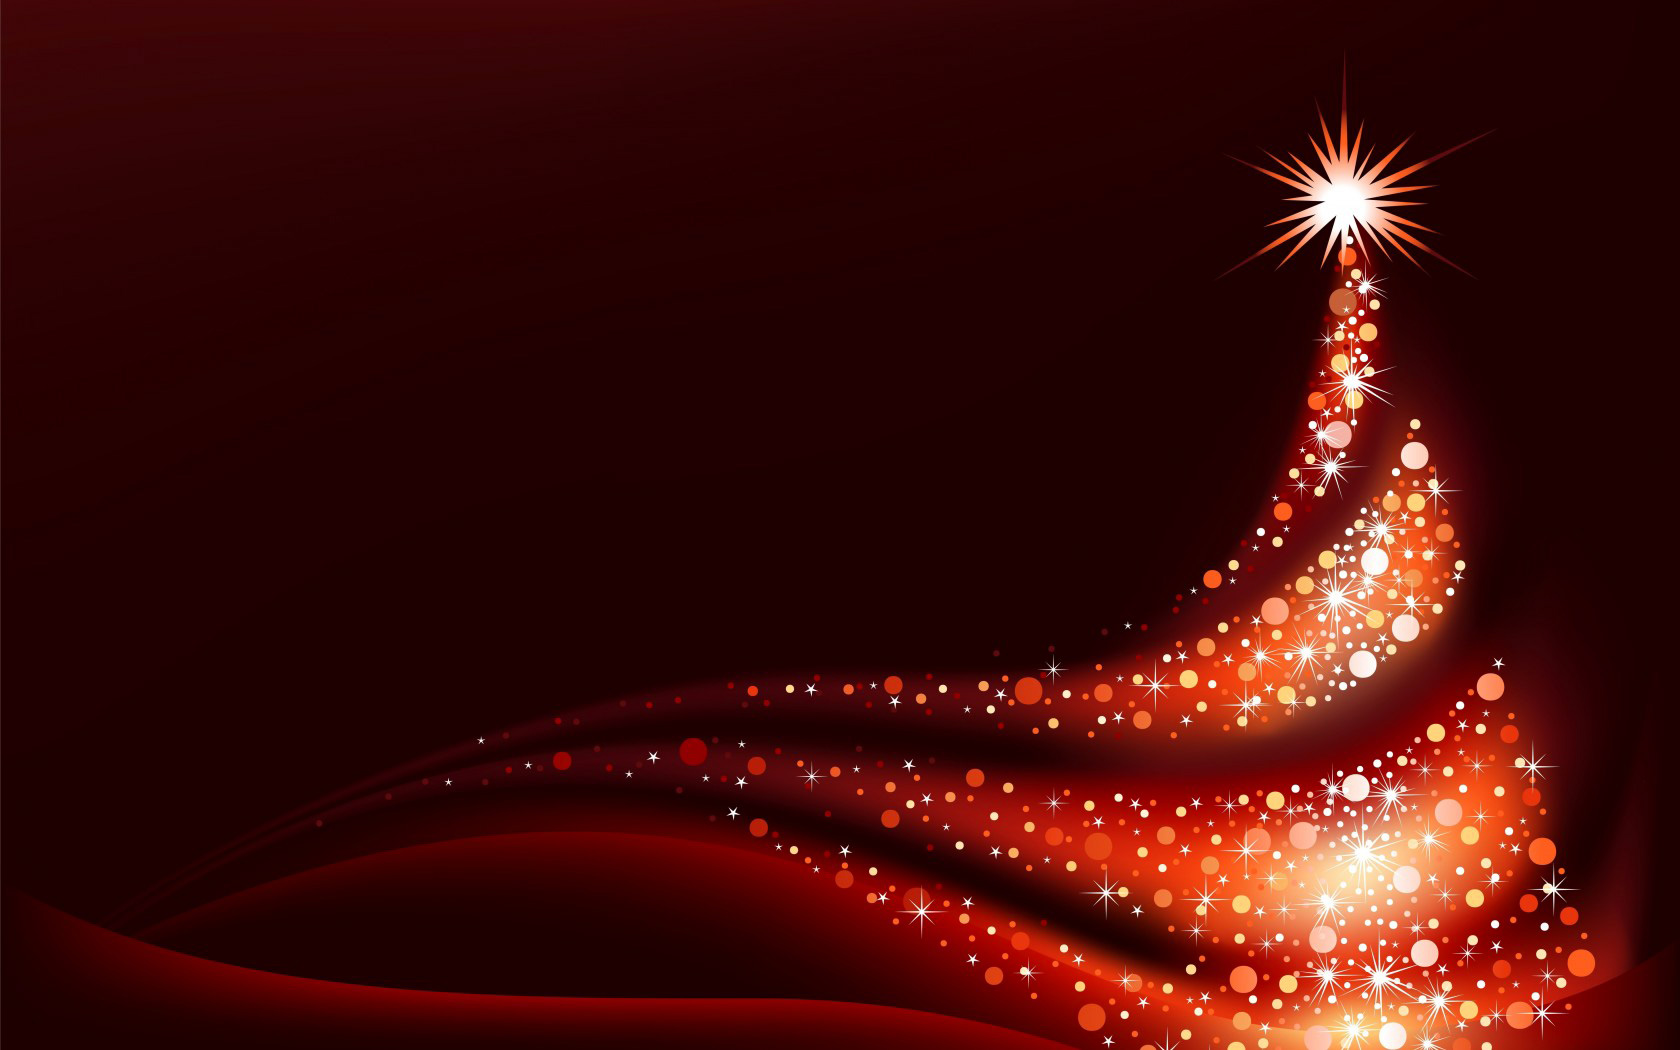 Red Christmas Background with Red Christmas Tree Gallery 1680x1050